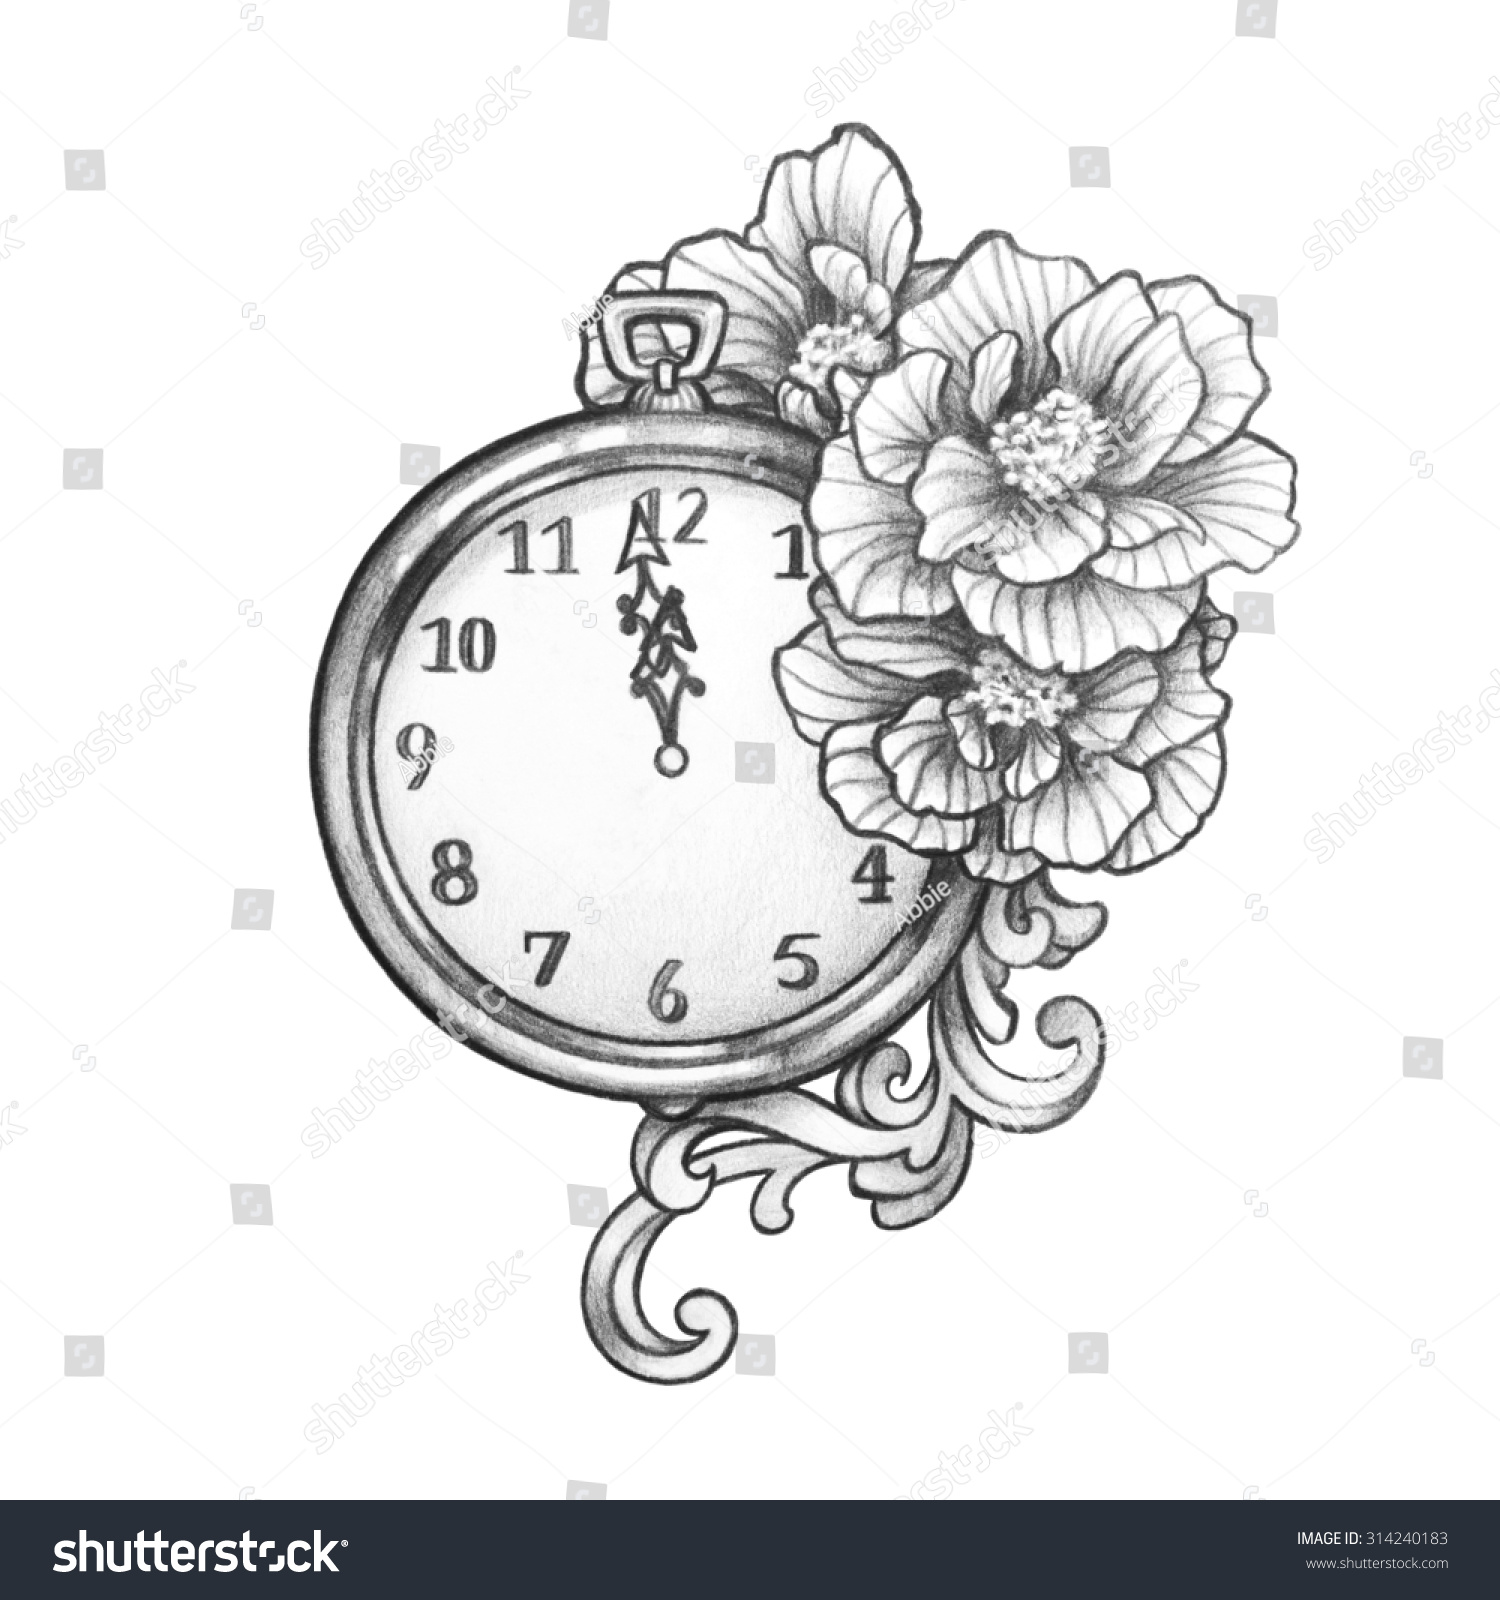 New Year S Line Art : New years eve clock about hit stock illustration